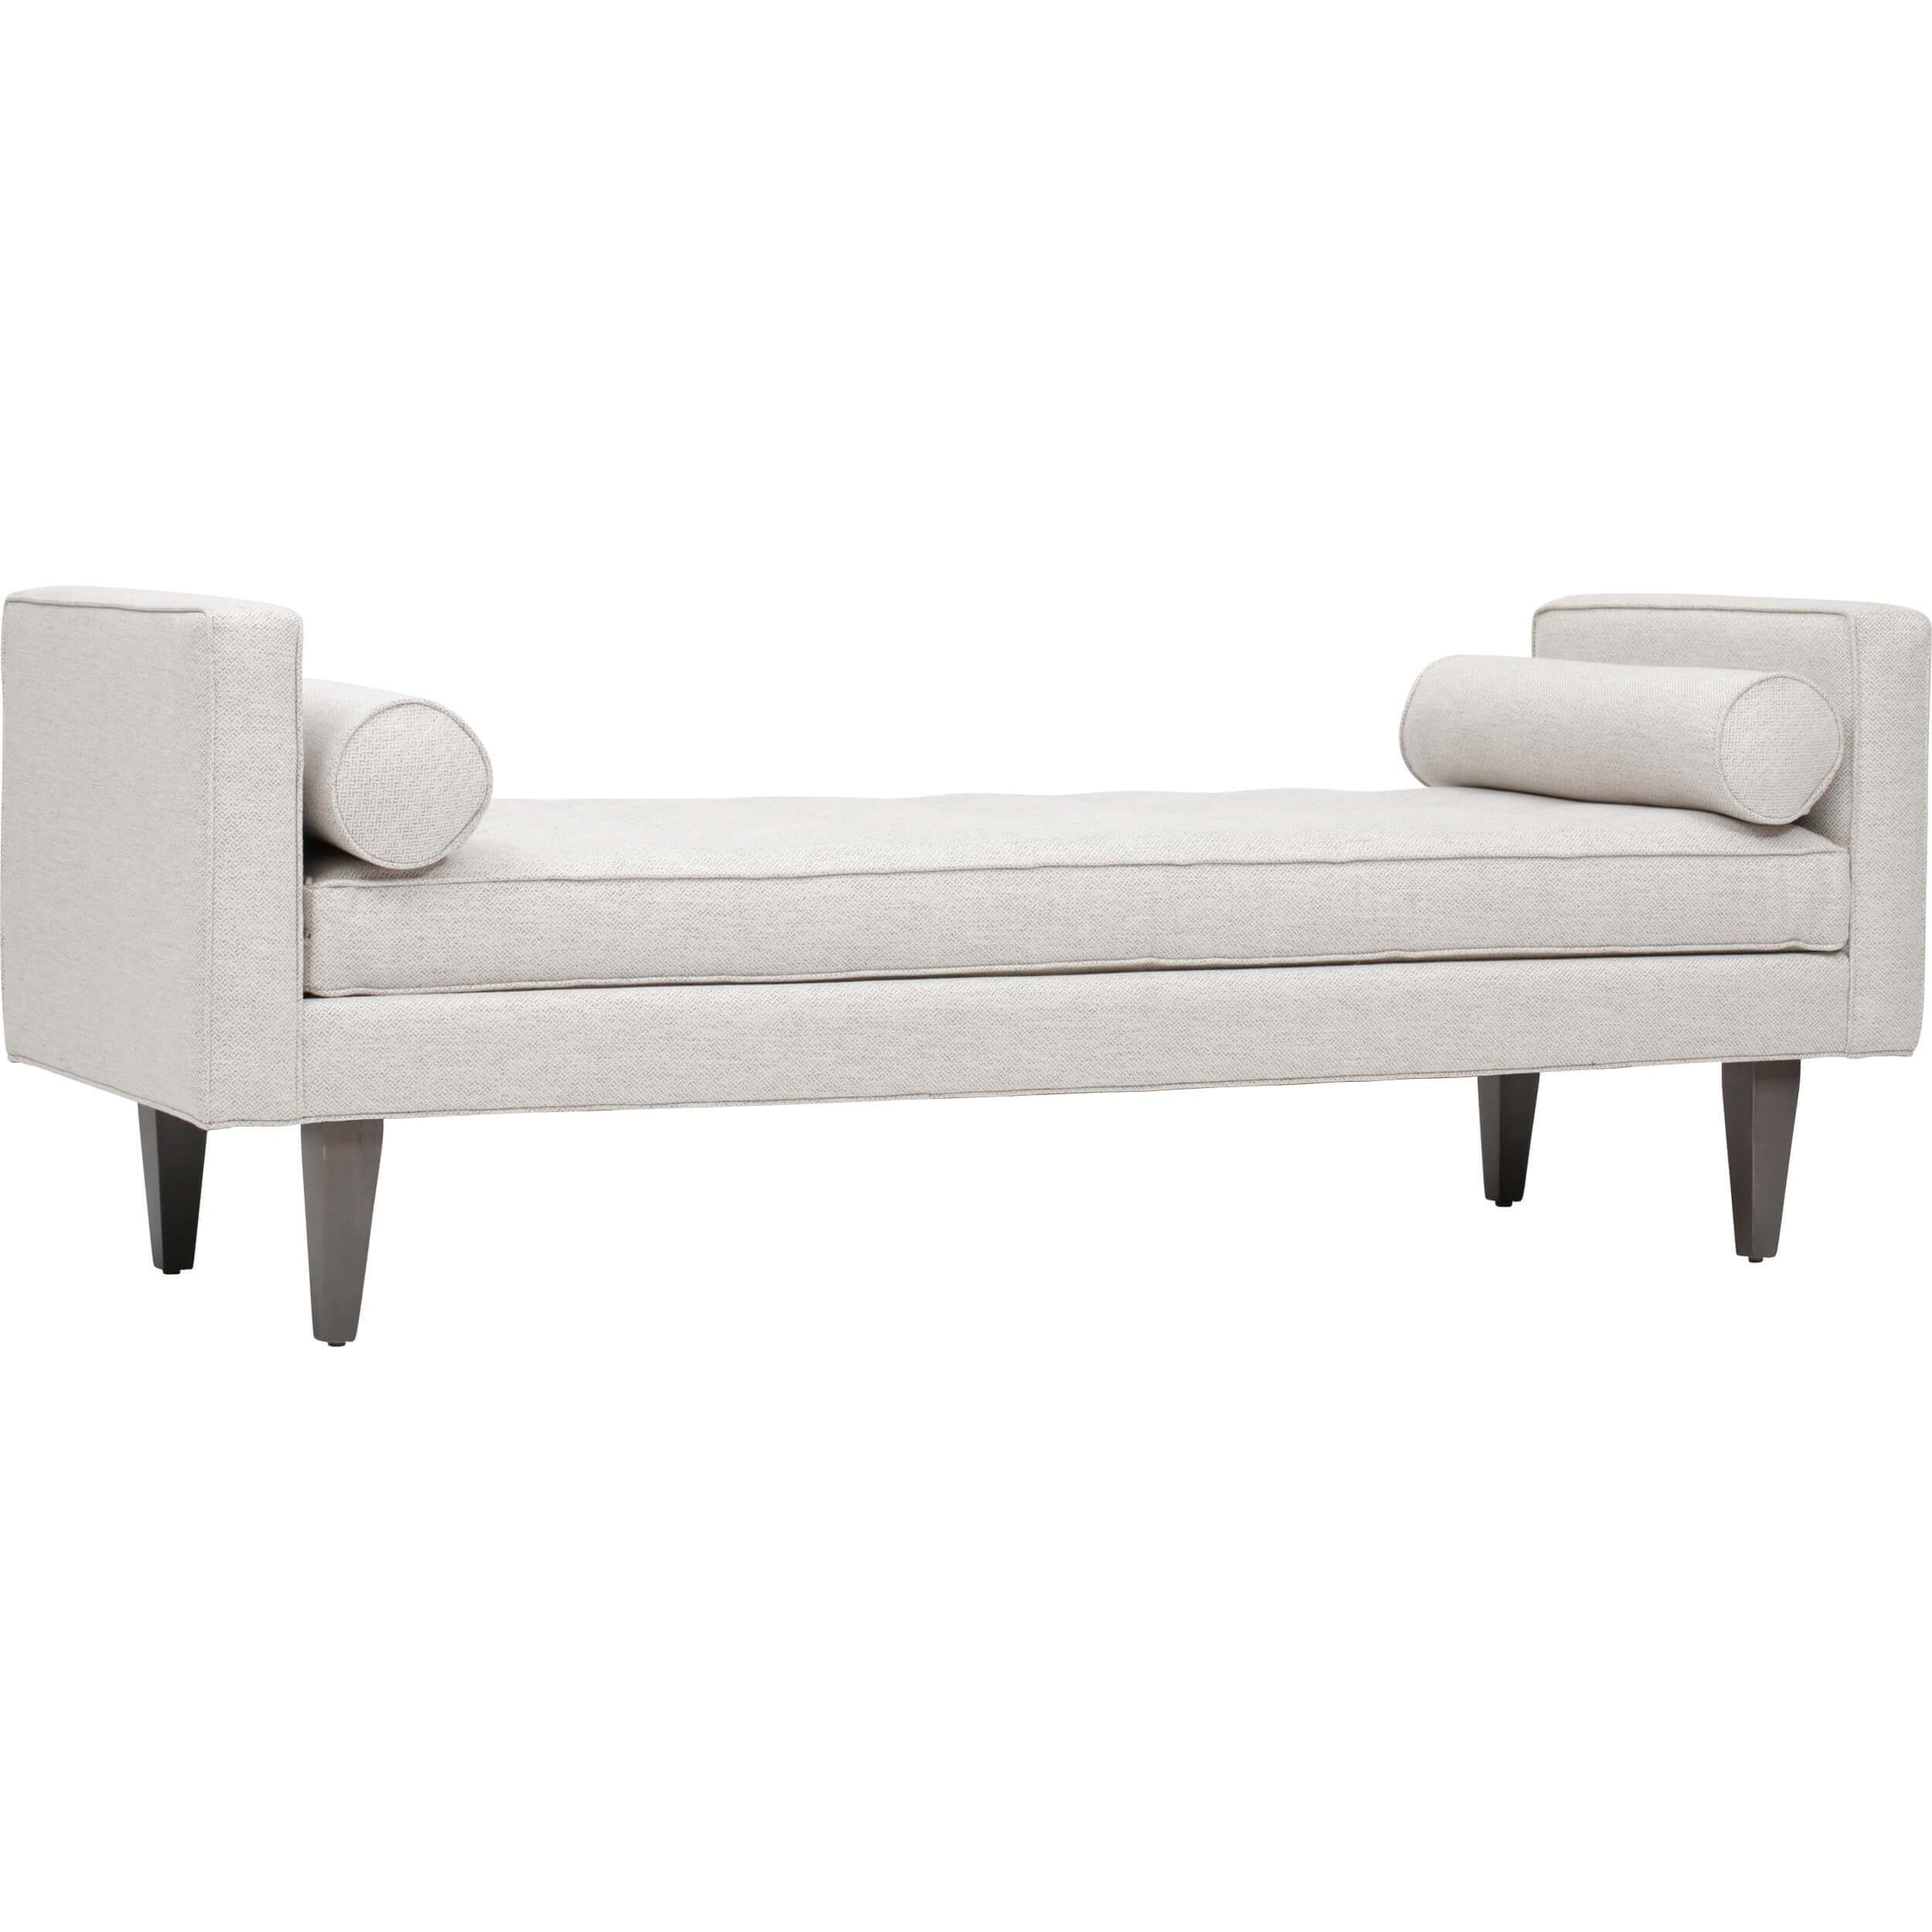 caldas linha moveis zanine chaise z bench for longue by pin jose